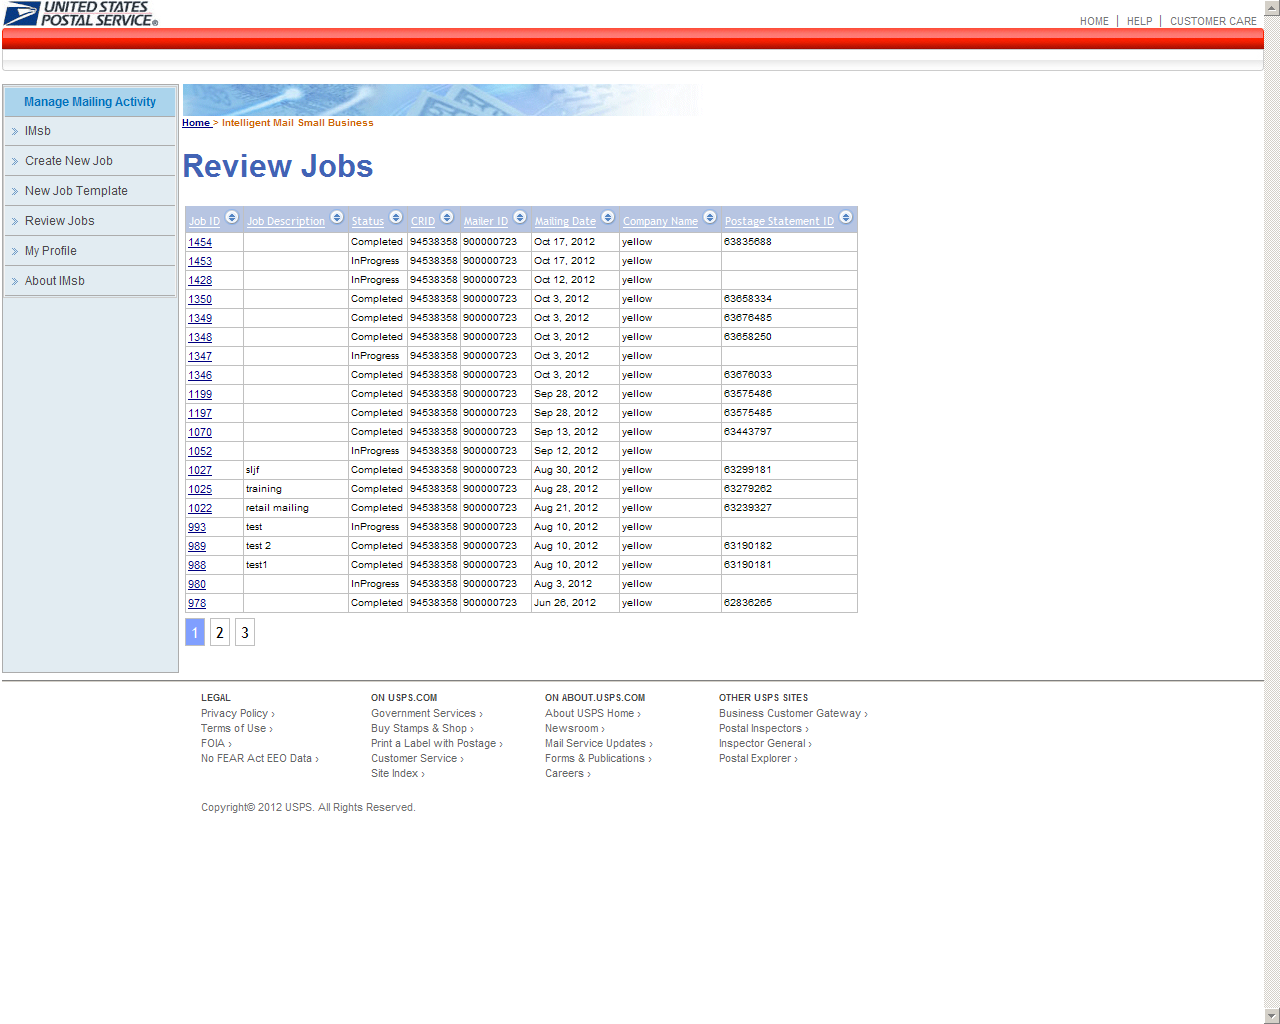 IMsb User Guide Jan 2013 ADDITIONAL FUNCTIONS Review Jobs contains a listing of the Jobs that the user has created on IMsb.